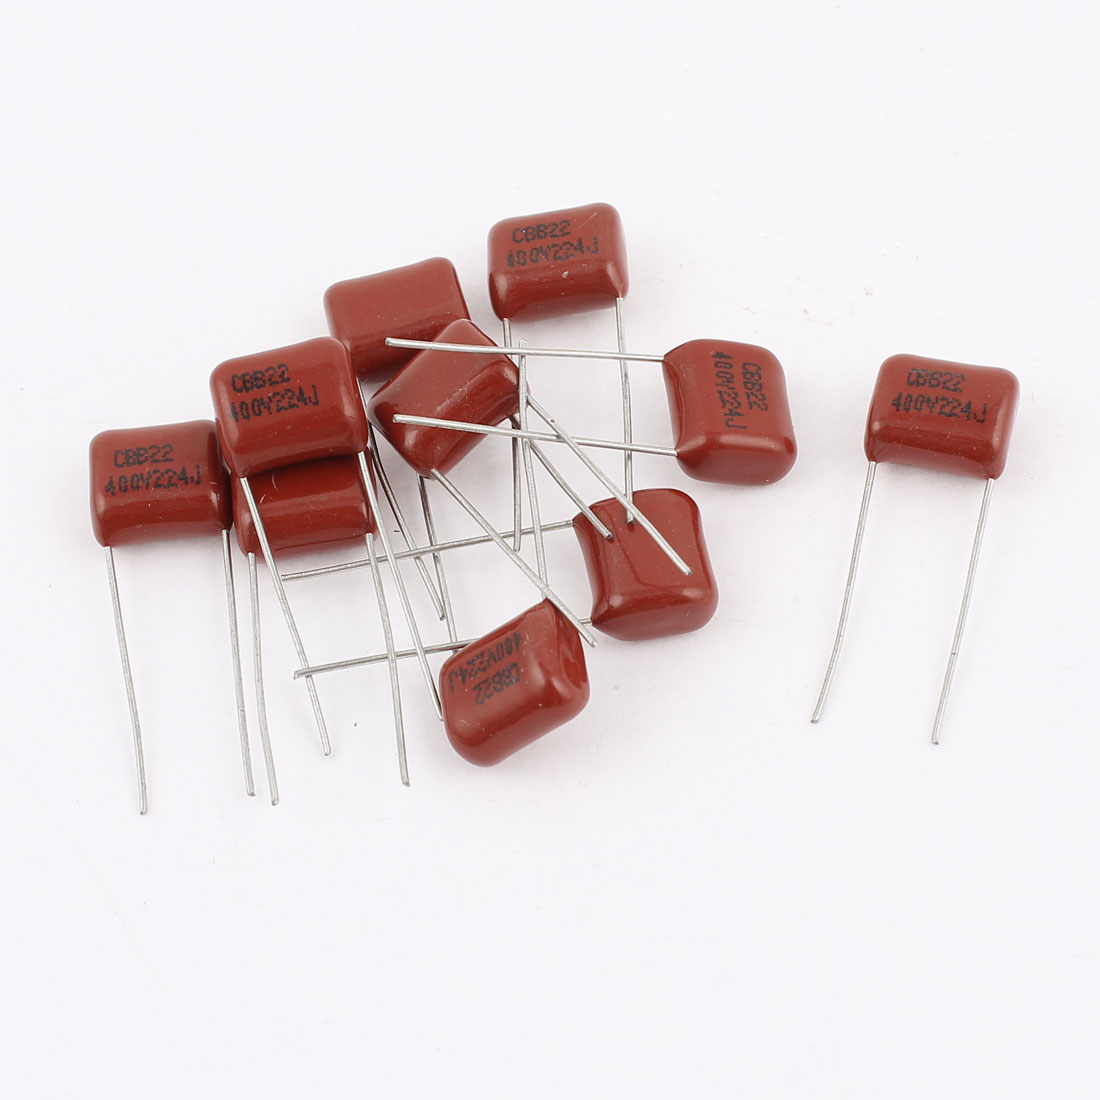 10pcs 224J 400V 0.22uF 5% Tolerance Metallized Polyester Film Capacitors CBB22